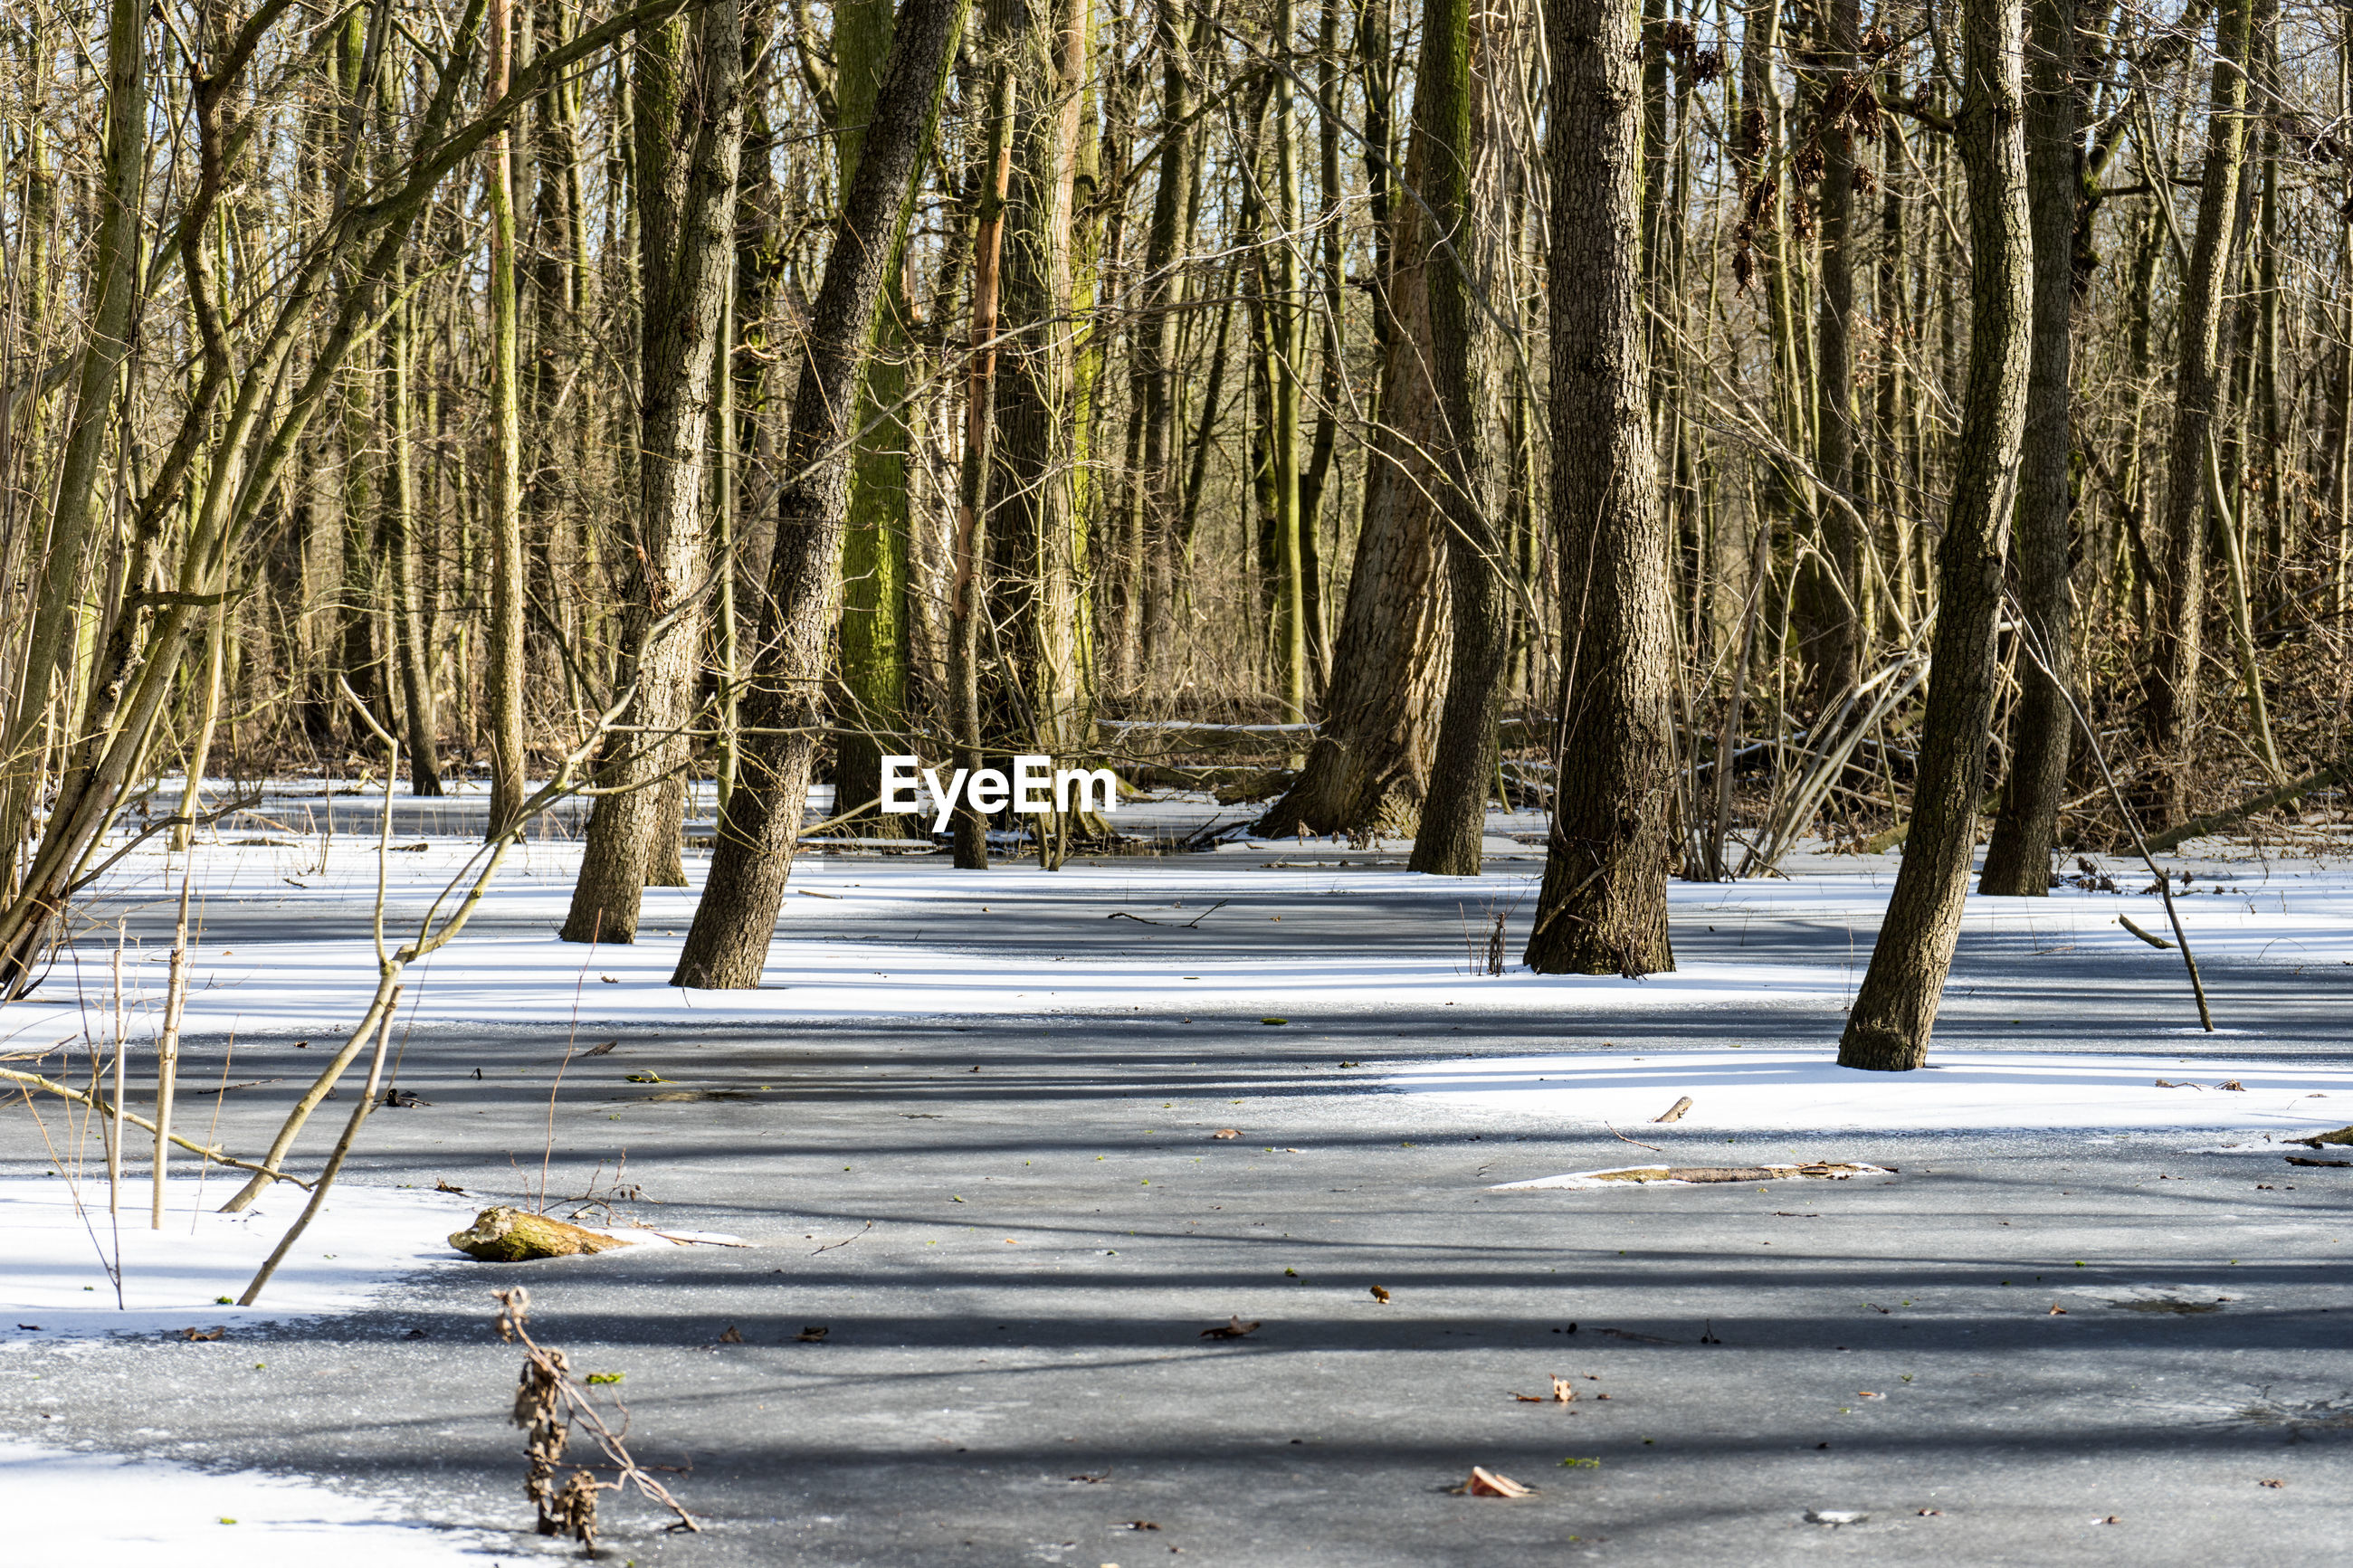 snow, winter, cold temperature, nature, tree, tranquility, cold, tranquil scene, outdoors, beauty in nature, no people, frozen, scenics, landscape, day, branch